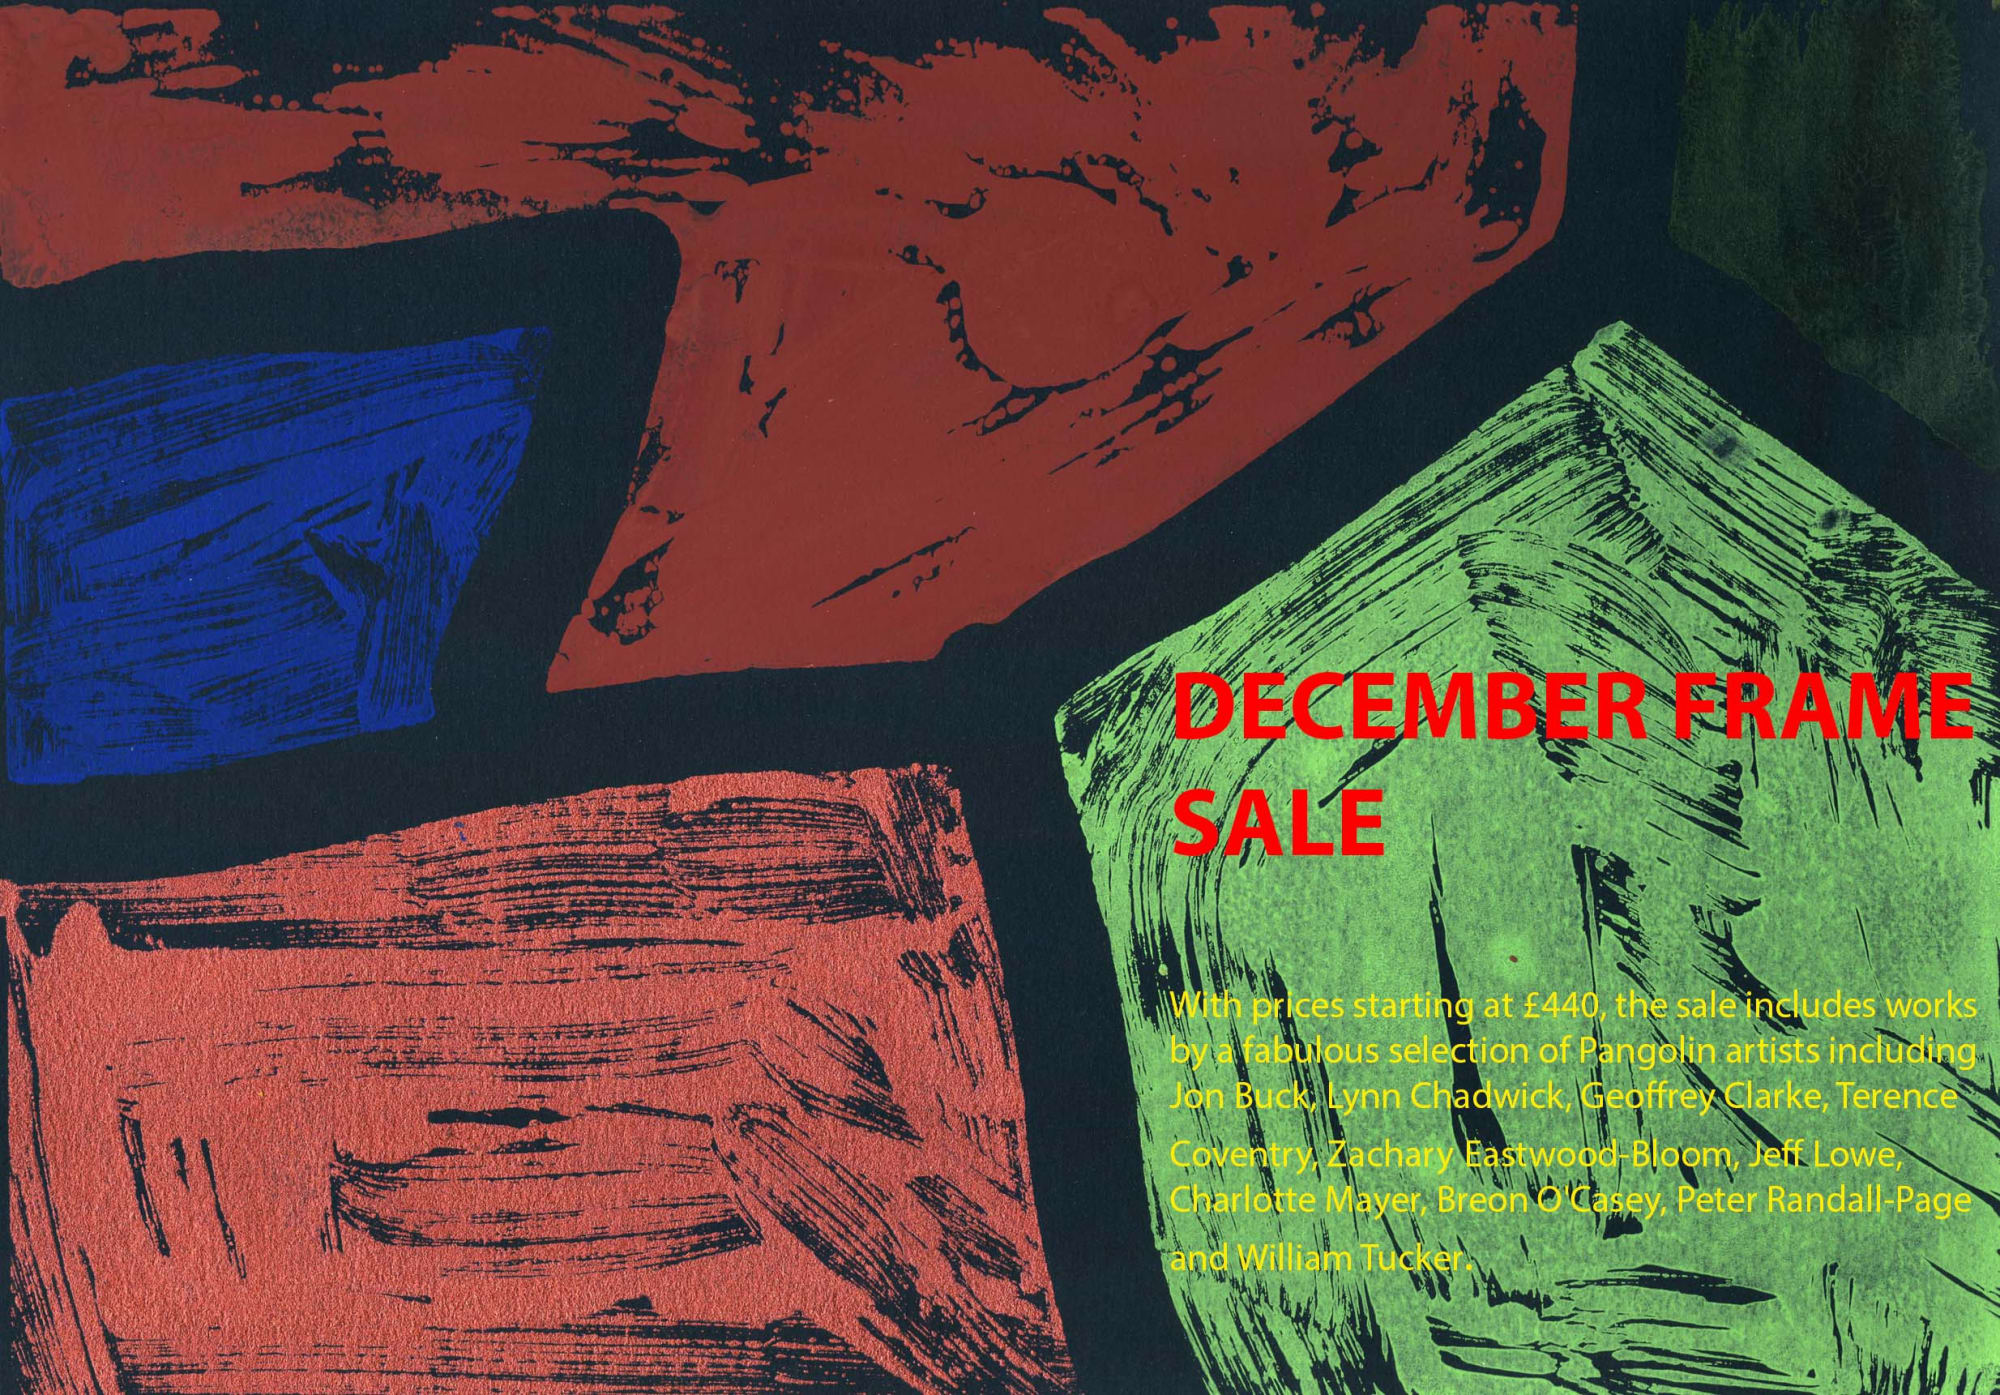 December Frame Sale: buy a beautiful print or drawing and get the frame for free!